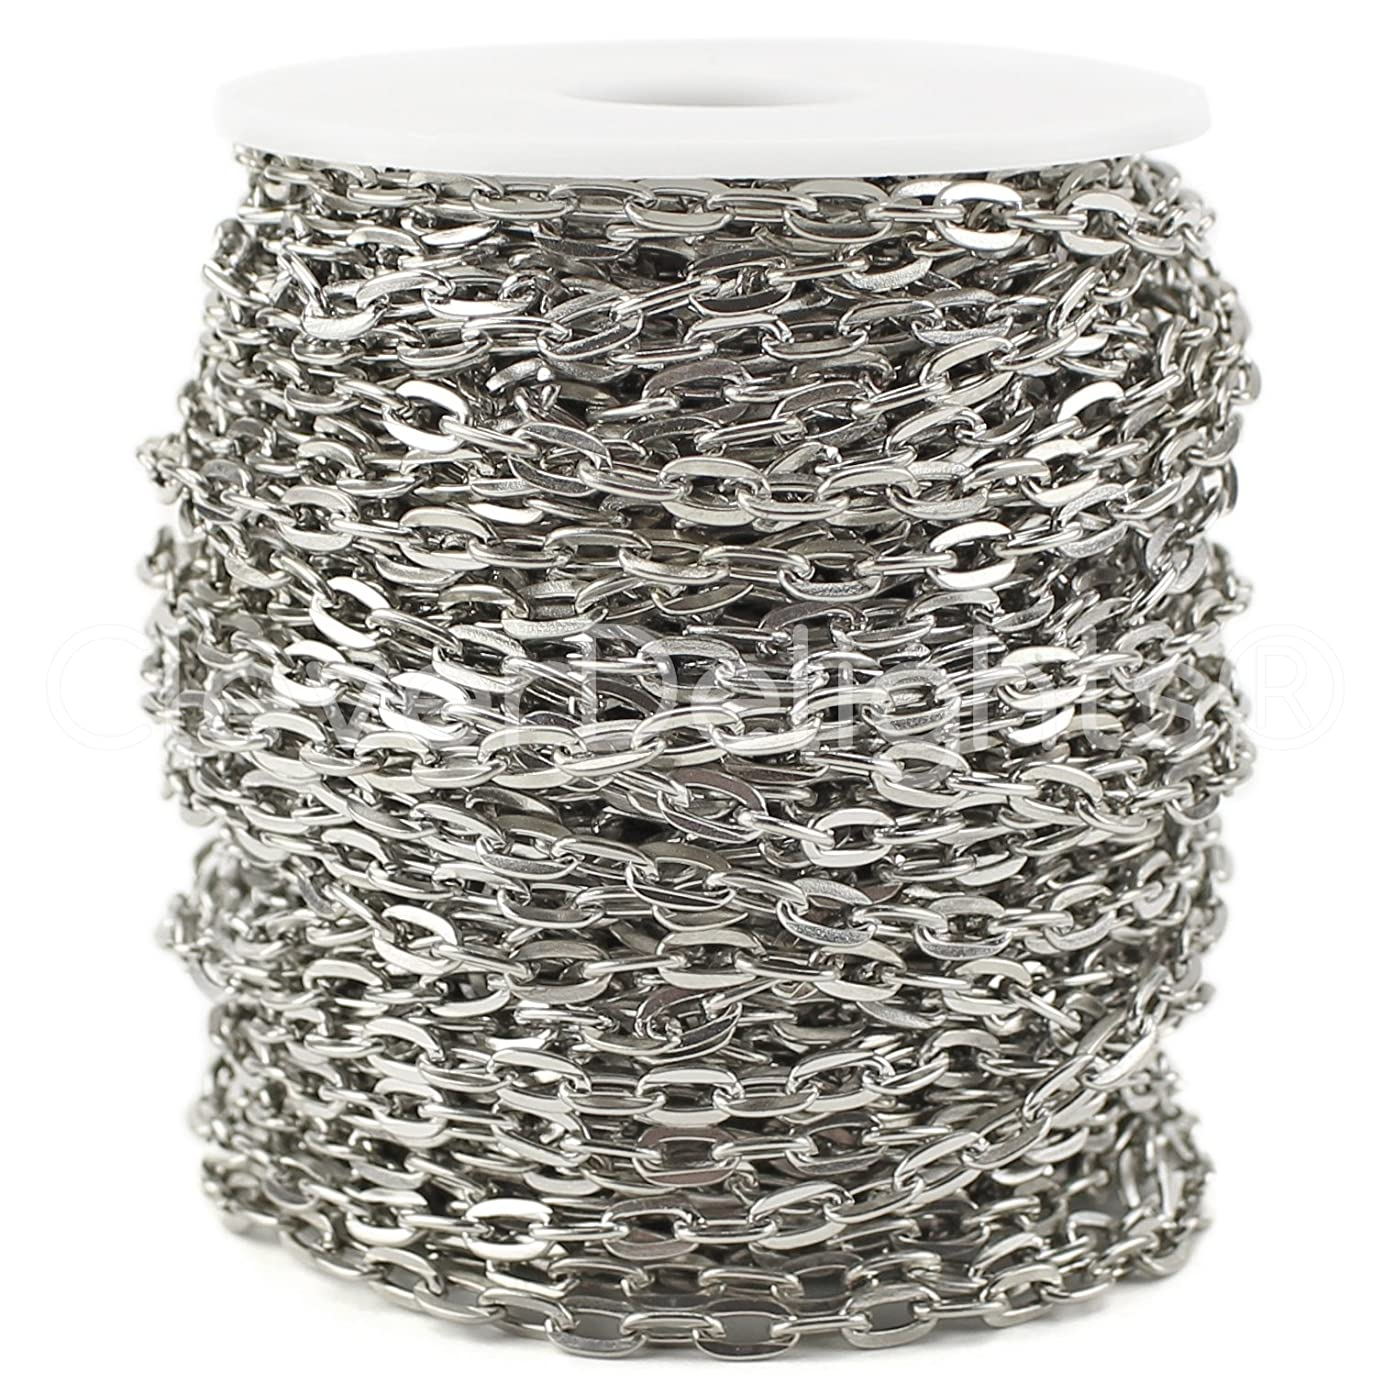 CleverDelights Cable Chain Spool - 100 Feet - Antique Silver (Platinum) Color - 5x7mm Link - Bulk Roll